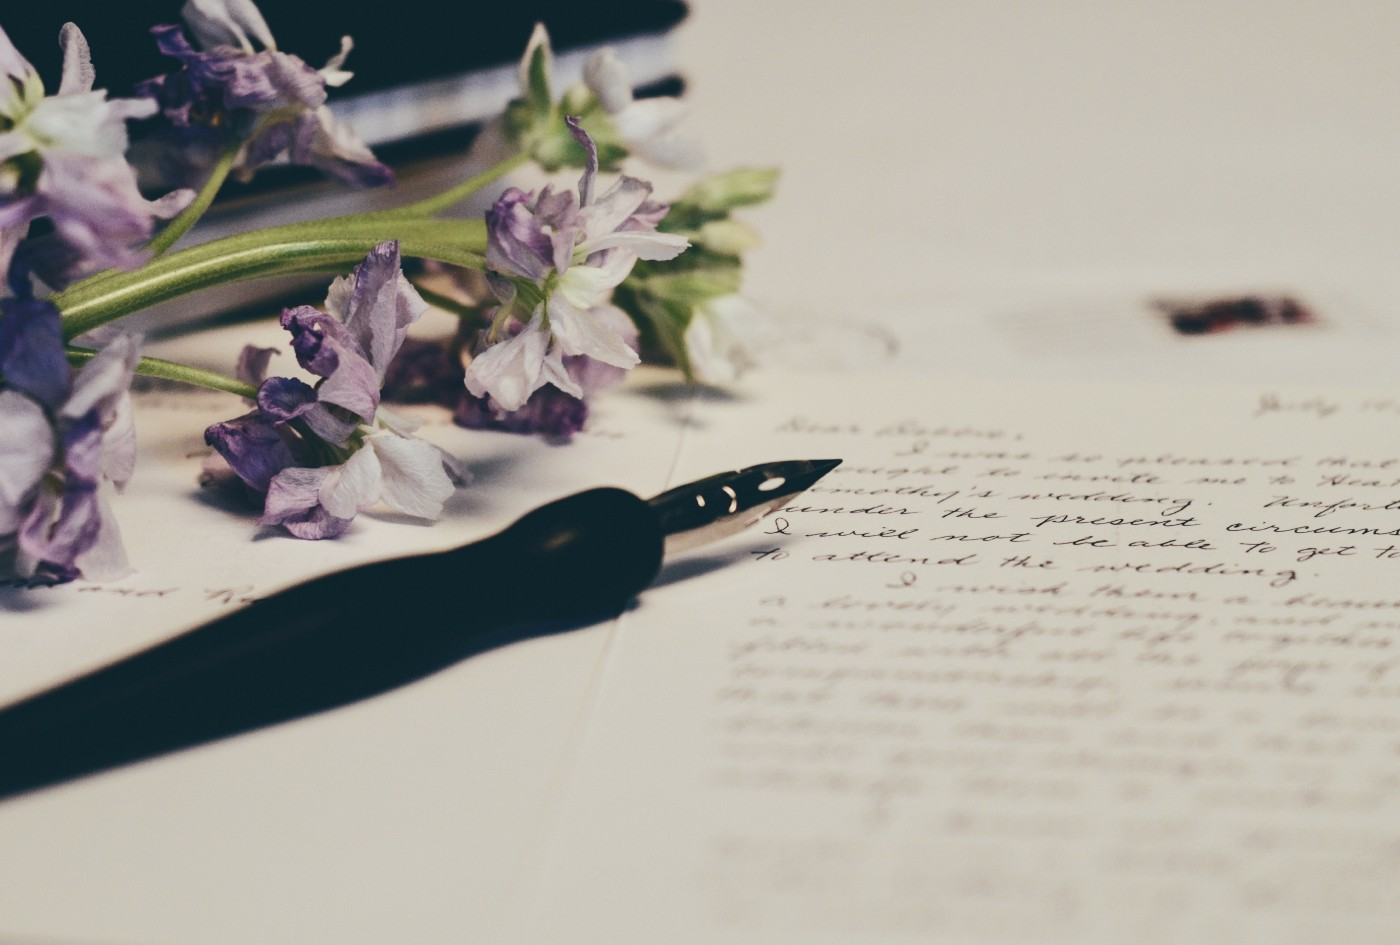 A fountain pen rests on a handwritten letter with some light purple flowers.